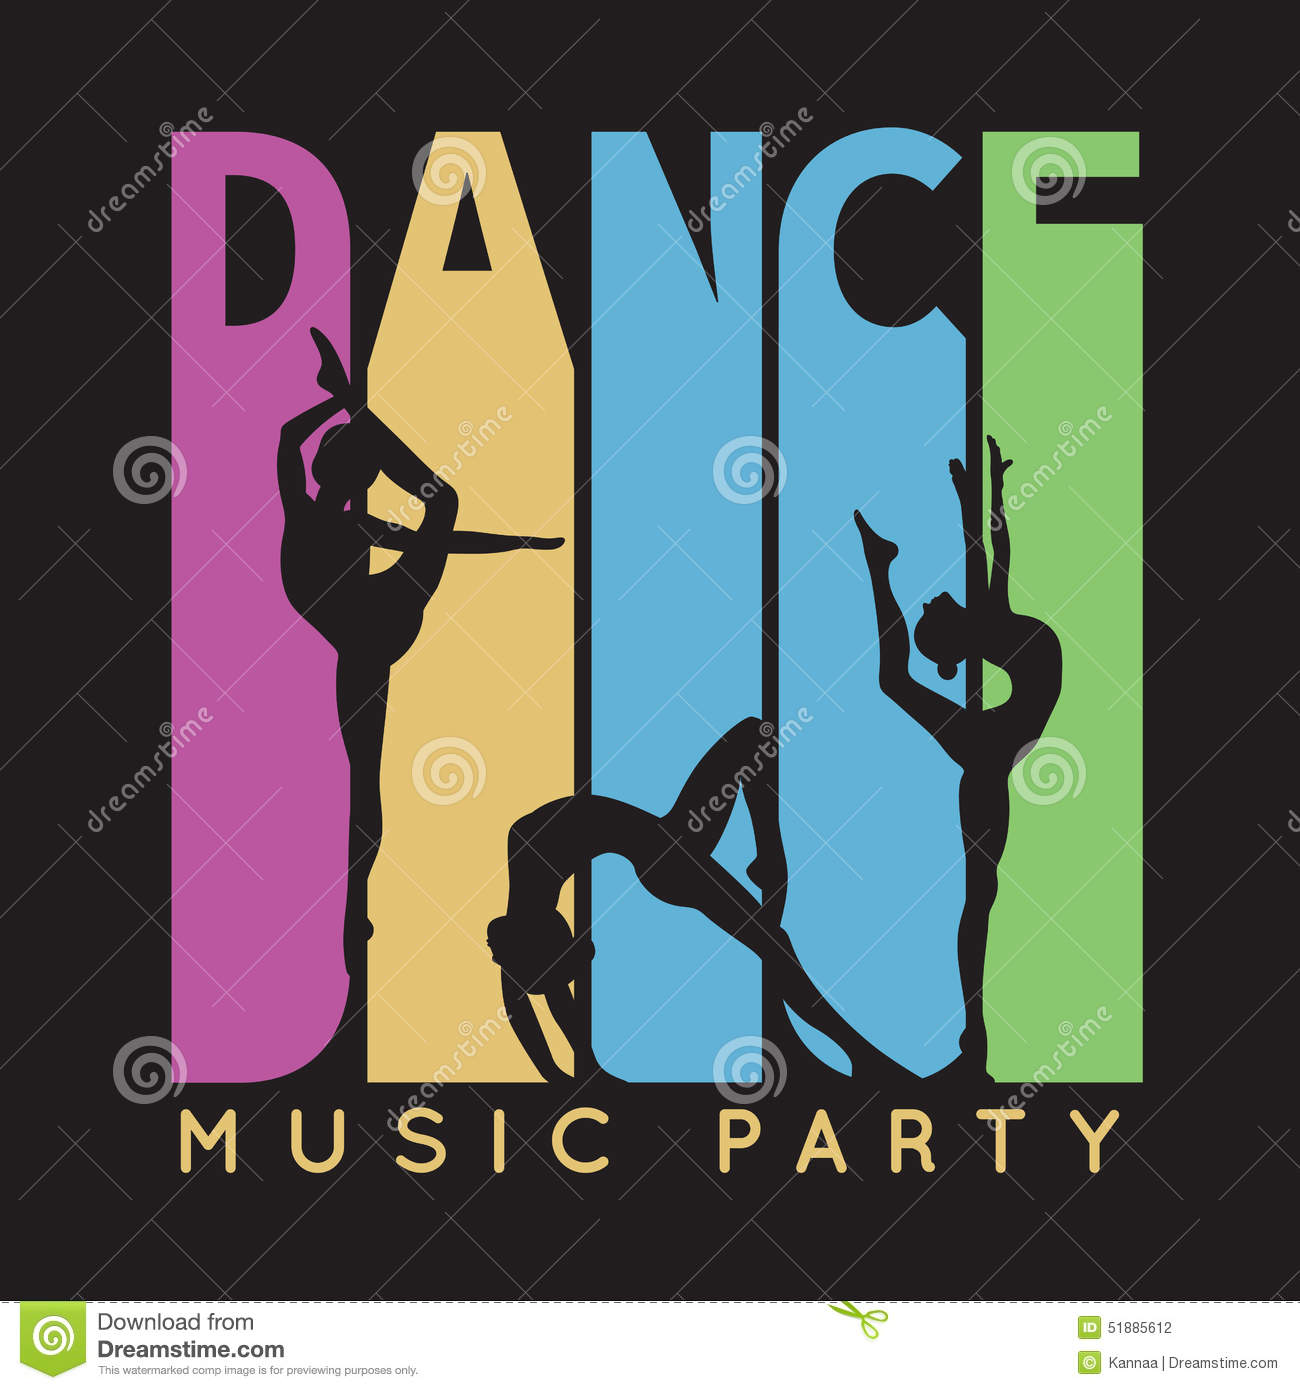 2b9fcc99 Dance typography, t-shirt graphics. Vector illustration for fashion design.  Music party flyer with pretty girl dancer silhouette.